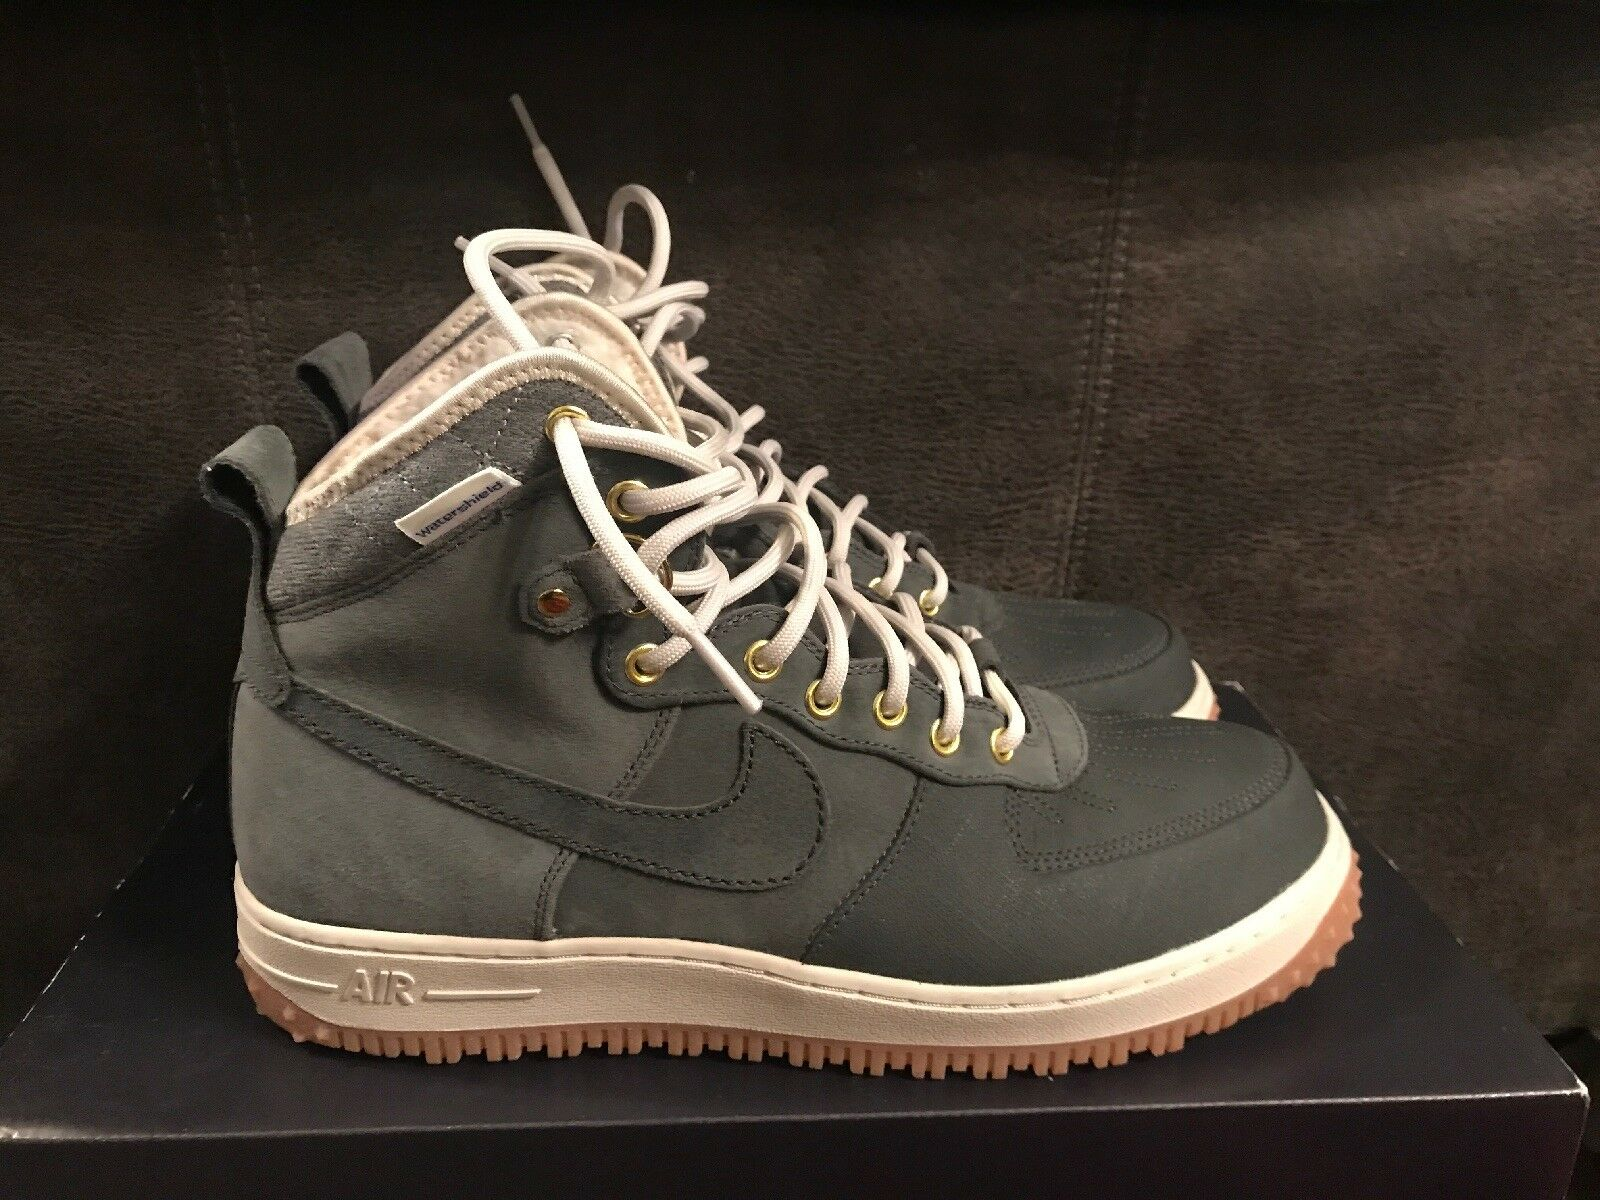 Air Force One Duckboot Sz 11.5